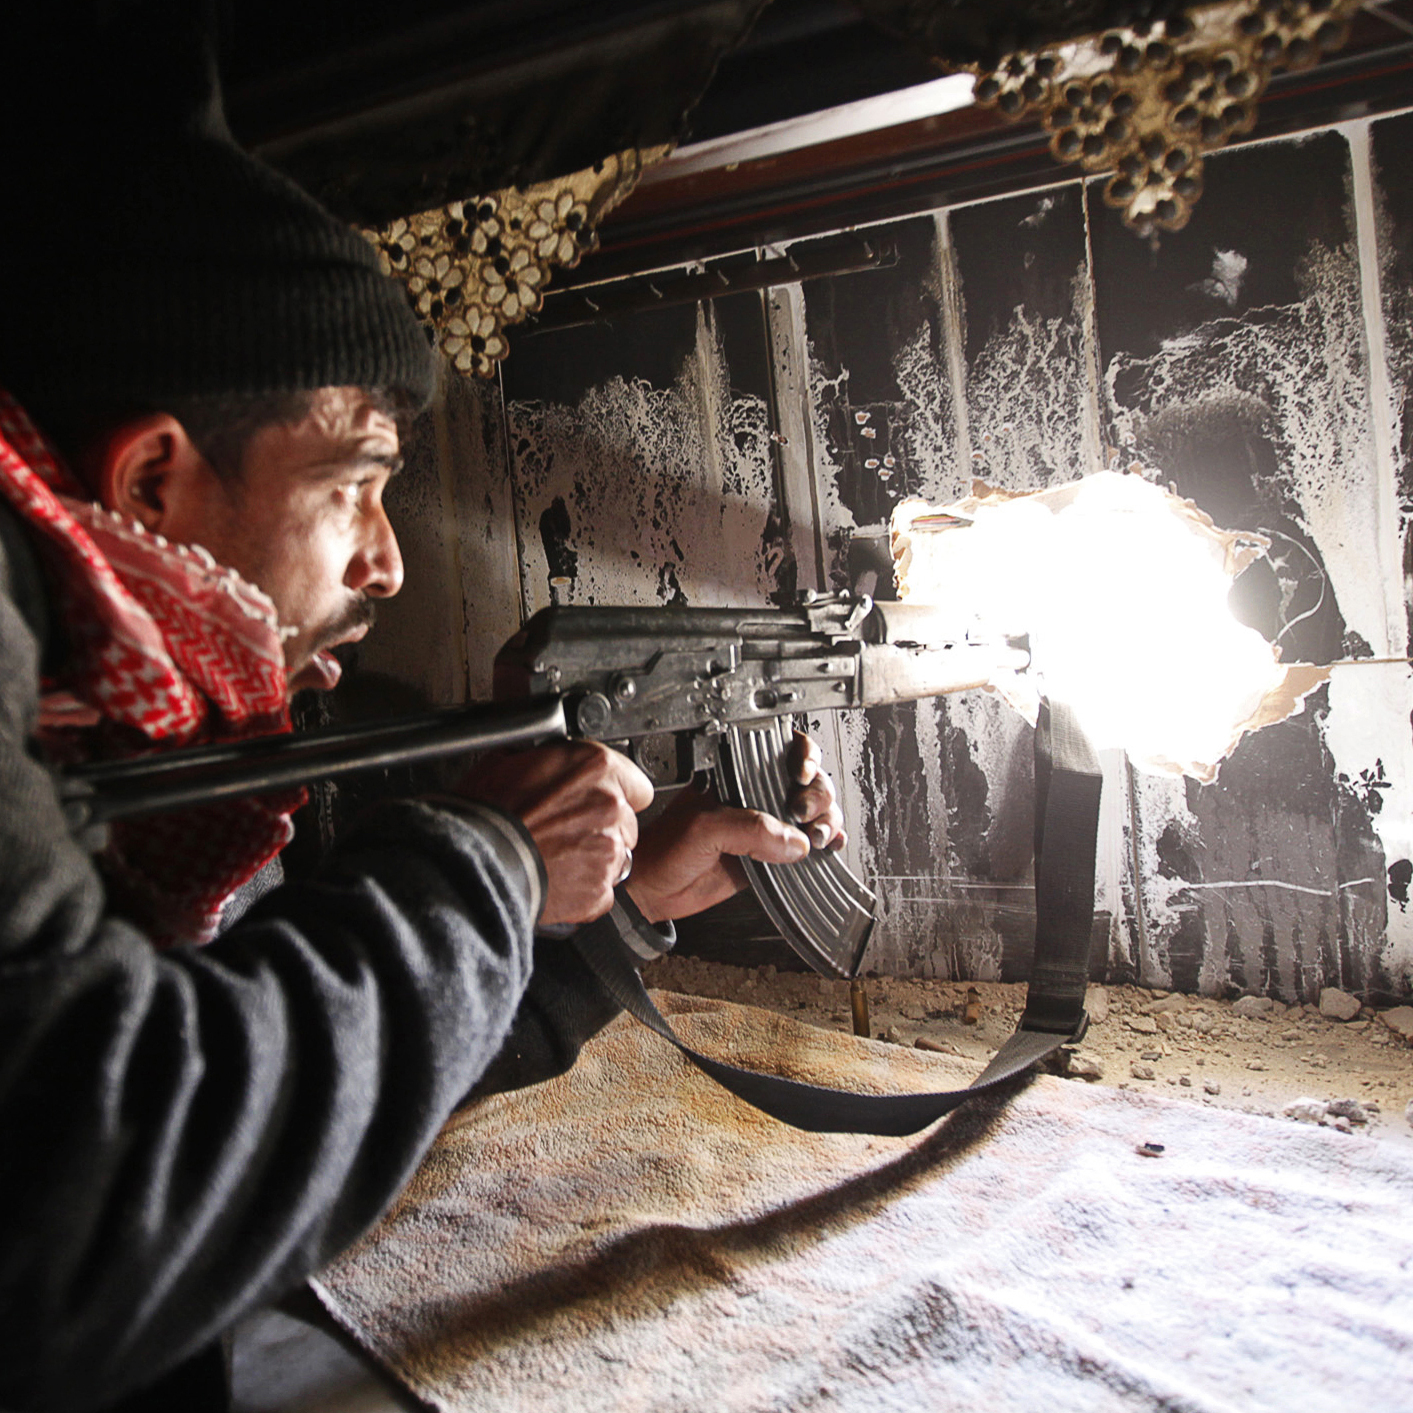 A Free Syrian Army fighter takes up position inside a burnt room in Aleppo on Nov. 12, 2012.